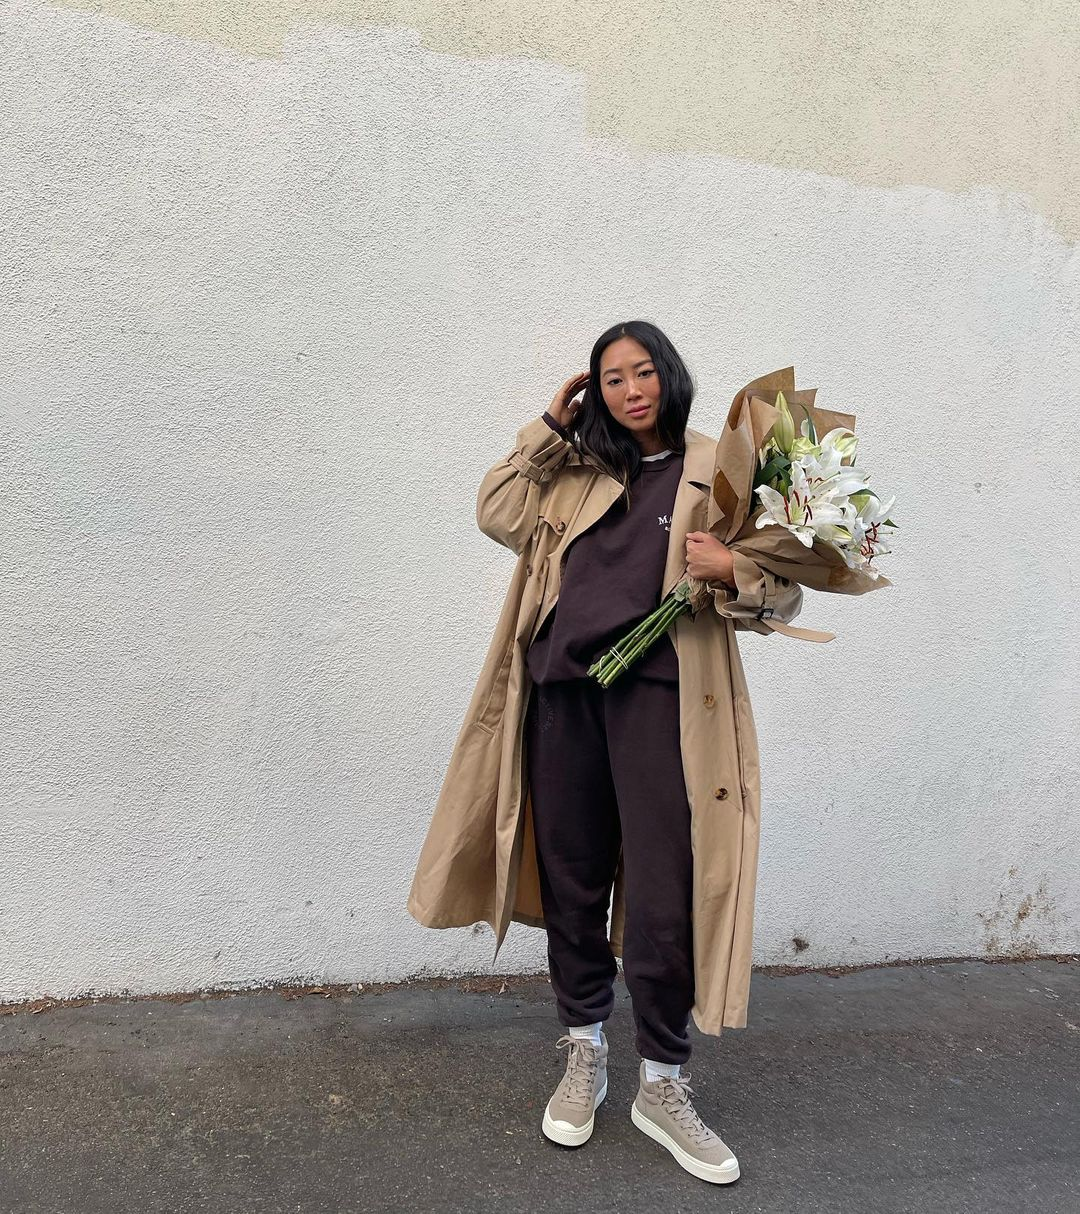 aimee-song-wardrobe-nyc-release-04-cotton-trench-coat-instagram